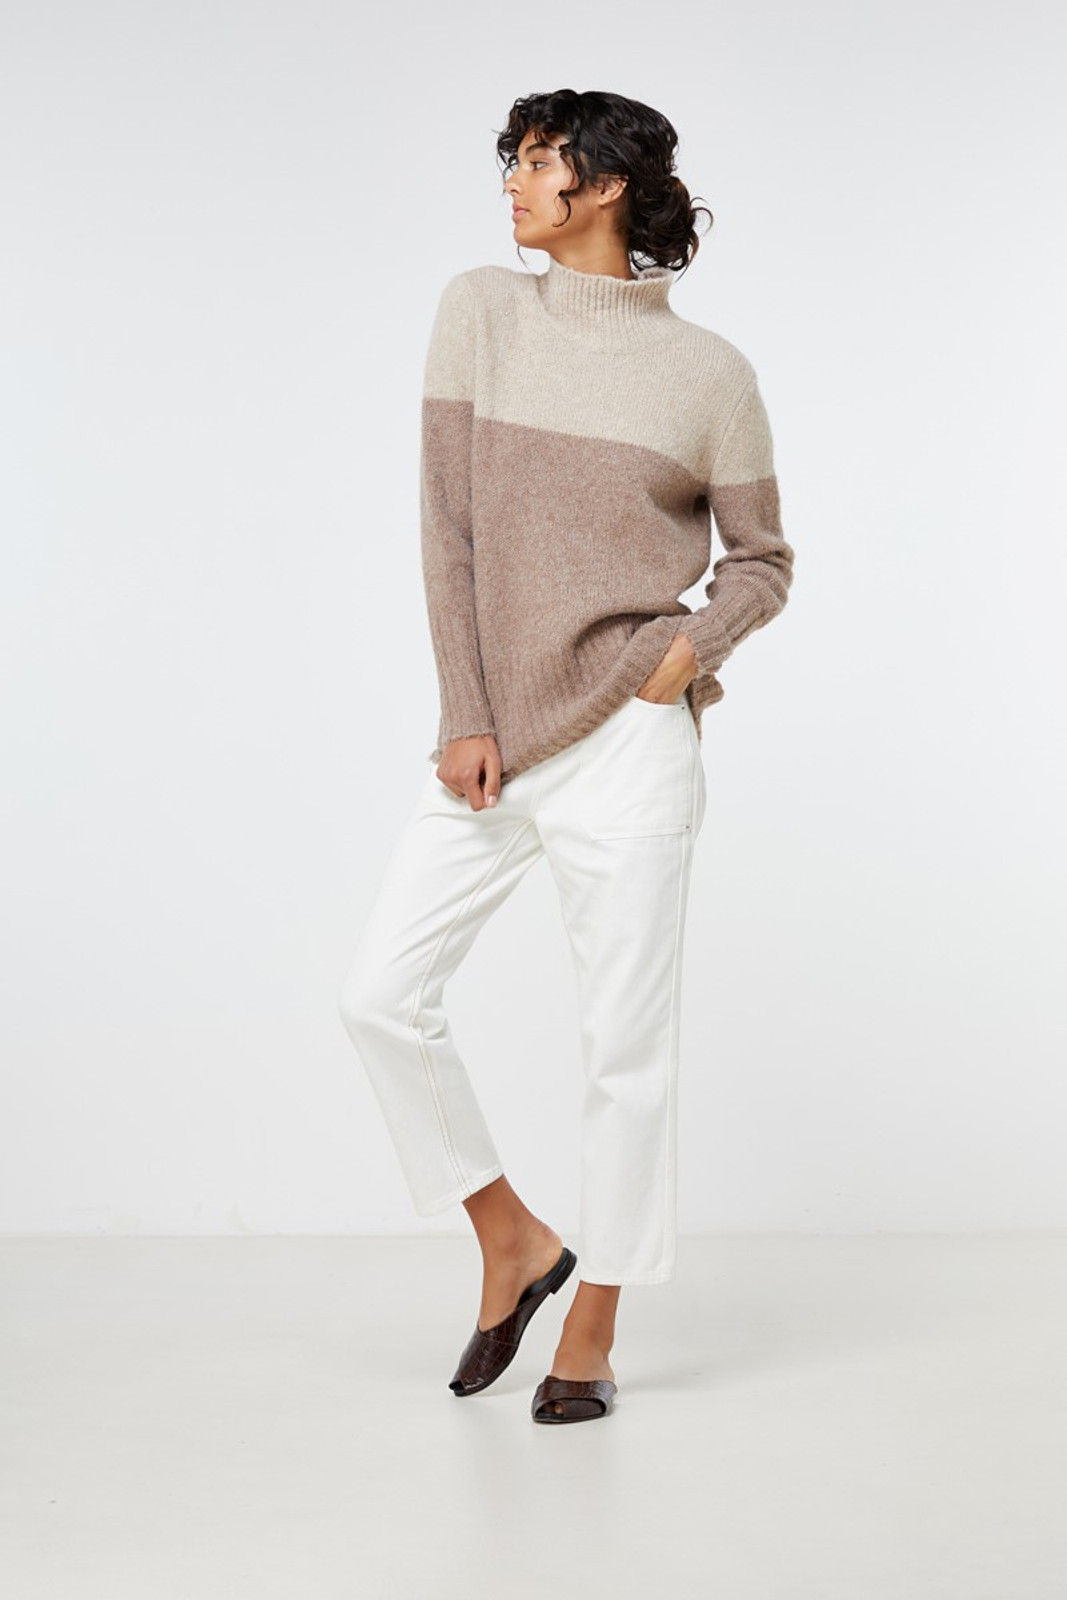 Elka Collective Ana Knit Multi  2